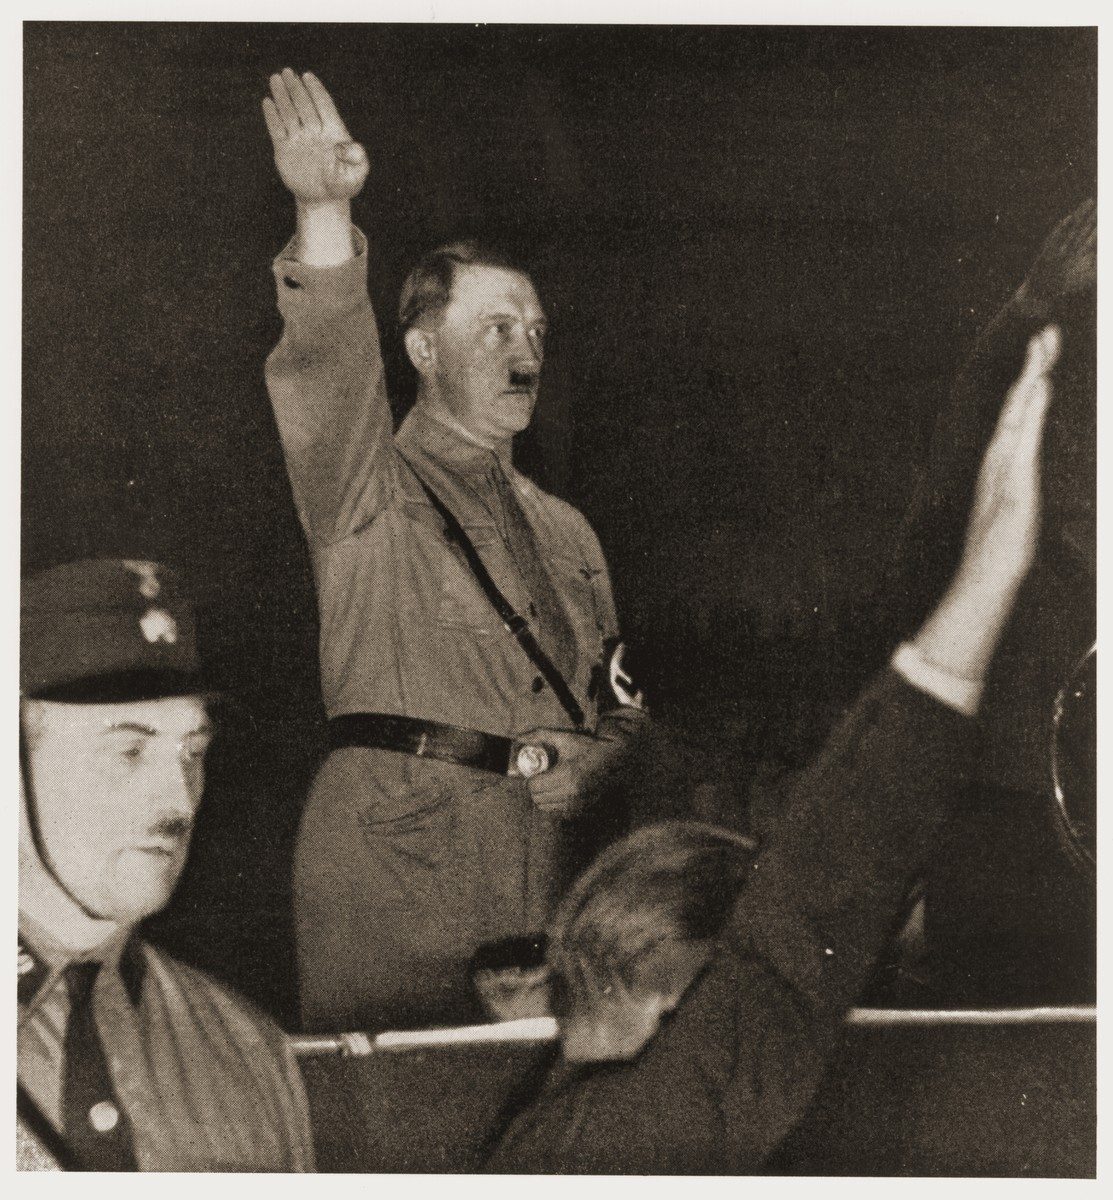 Adolf Hitler salutes his followers at a Nazi Party rally soon after his appointment as Chancellor.